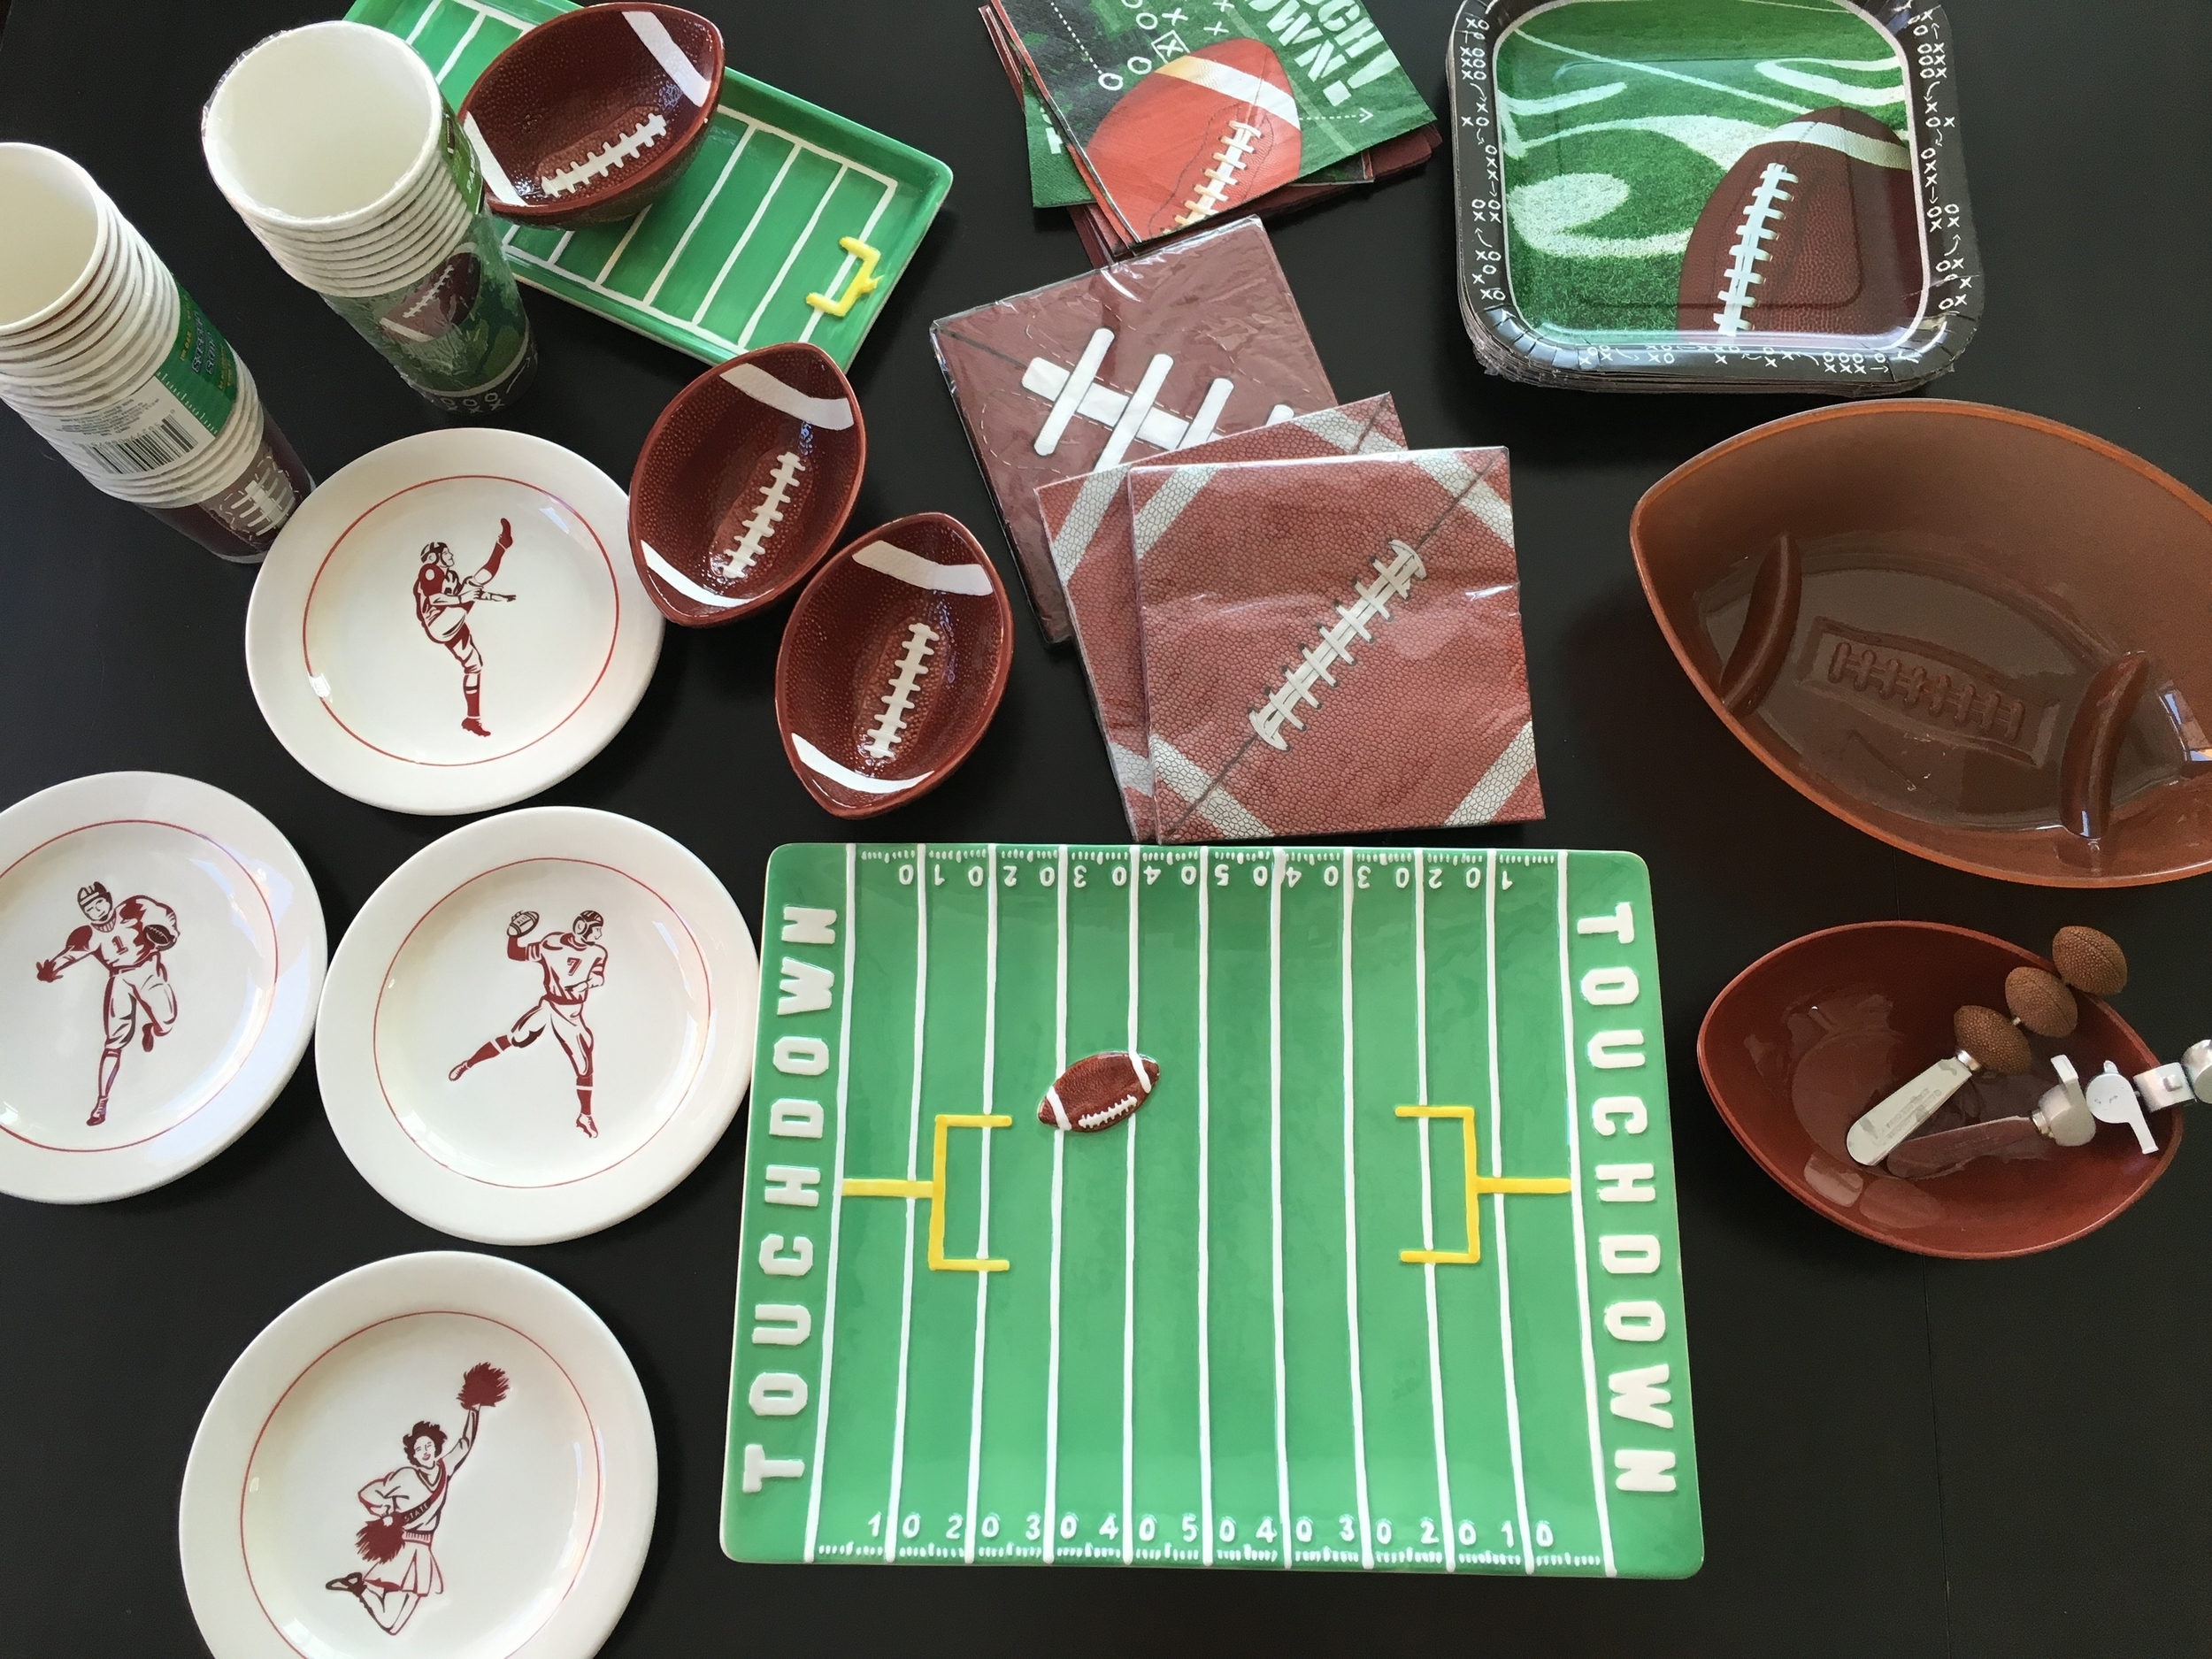 I love using these items to make our Super Bowl celebrations festive. The vintage small eats plates and the whistles & football spreaders (inside the football dish)were gifts from my cousin Jay-Jay. I bought the two green football platters with 3 small ceramic football dishes from Lund's grocery store days after Super Bowl years ago at 75% off. And I'm always picking up football themed napkins, paper cups and paper plates from Dollar Tree. I like to put little description cards that say things like: Potato Chips vs. Pretzels or Salsa vs. Ranch. Making everything a match up.